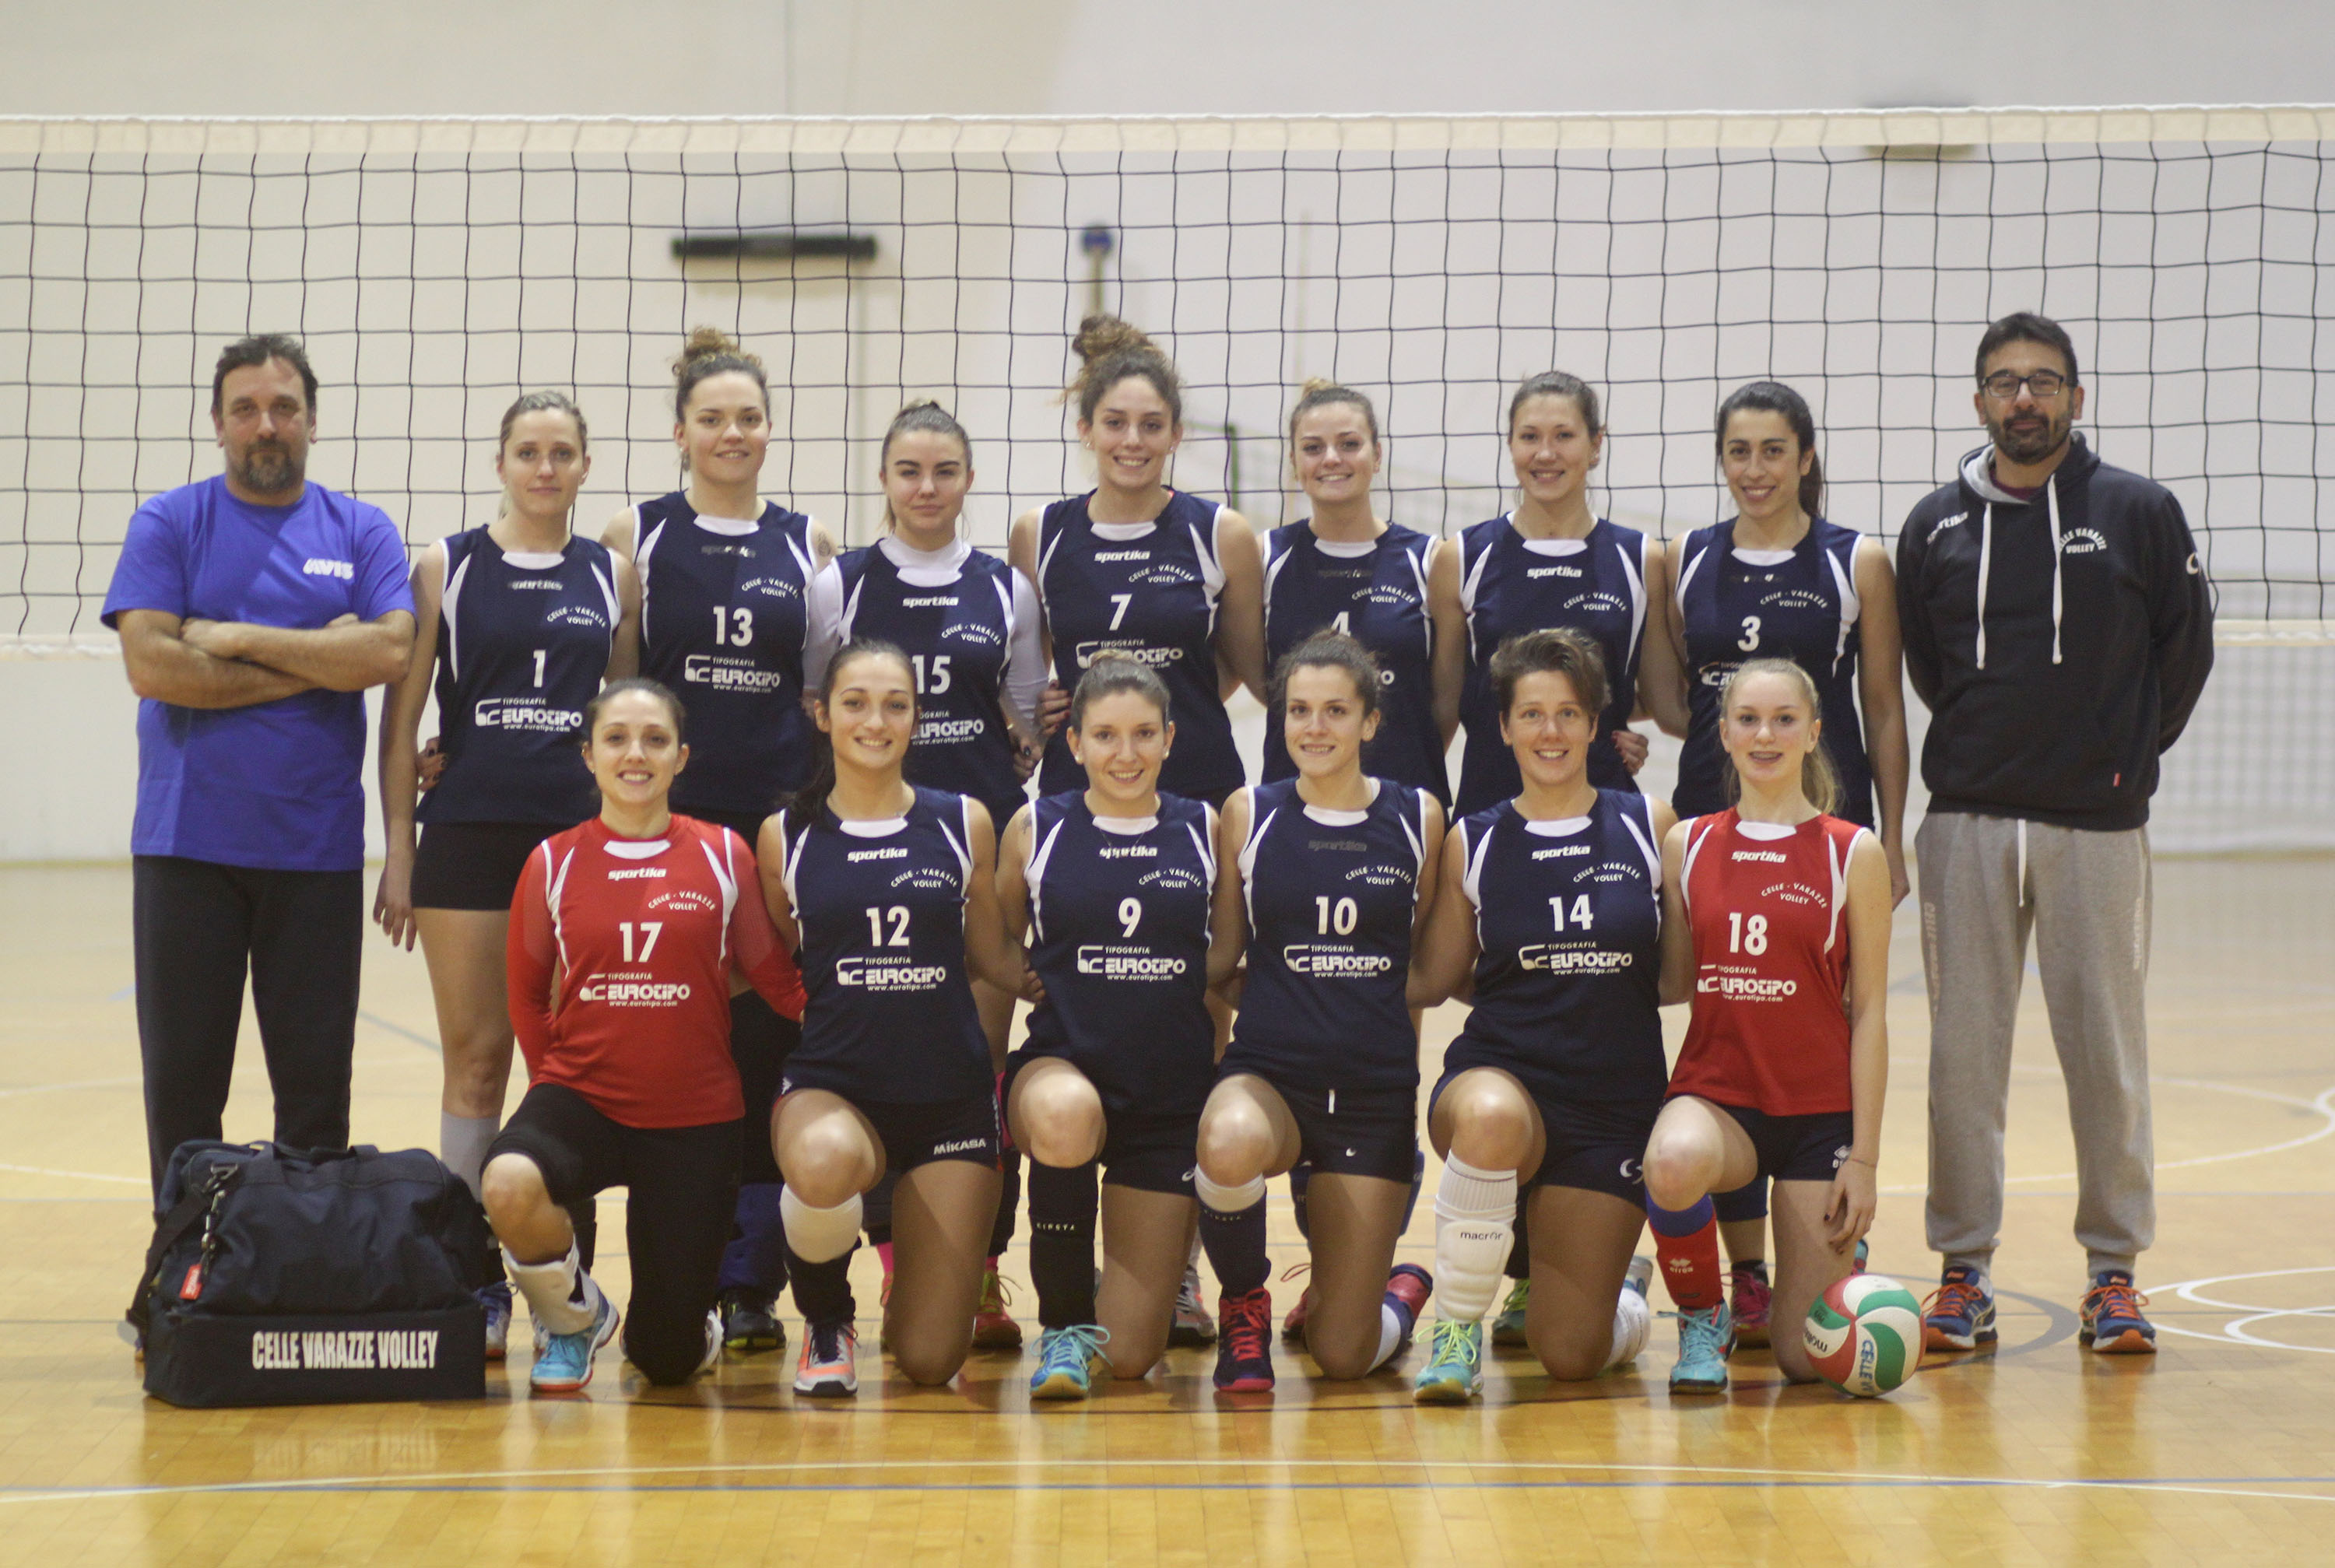 Celle Varazze Volley serie D